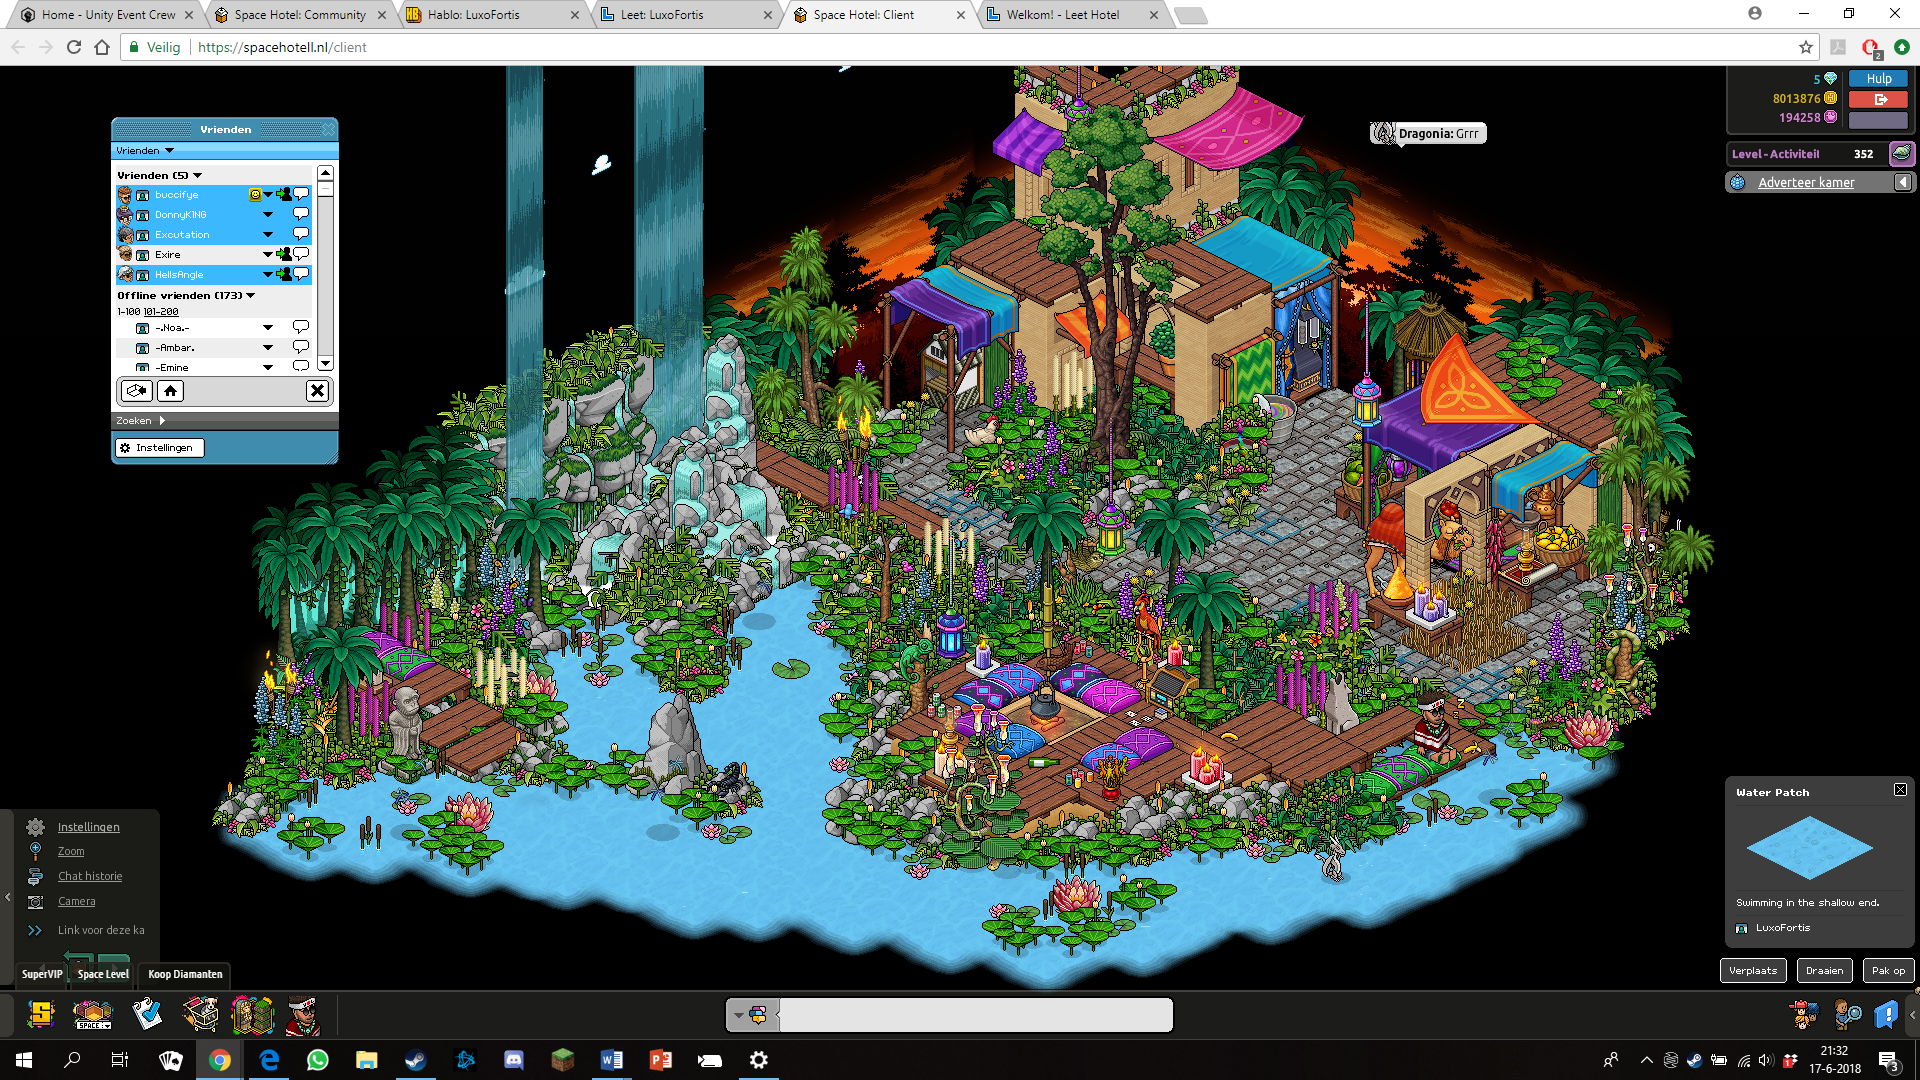 Habbo Slaapkamer Bazaar Thema Retro Hotel Space Habbo Desktop Screenshot Space